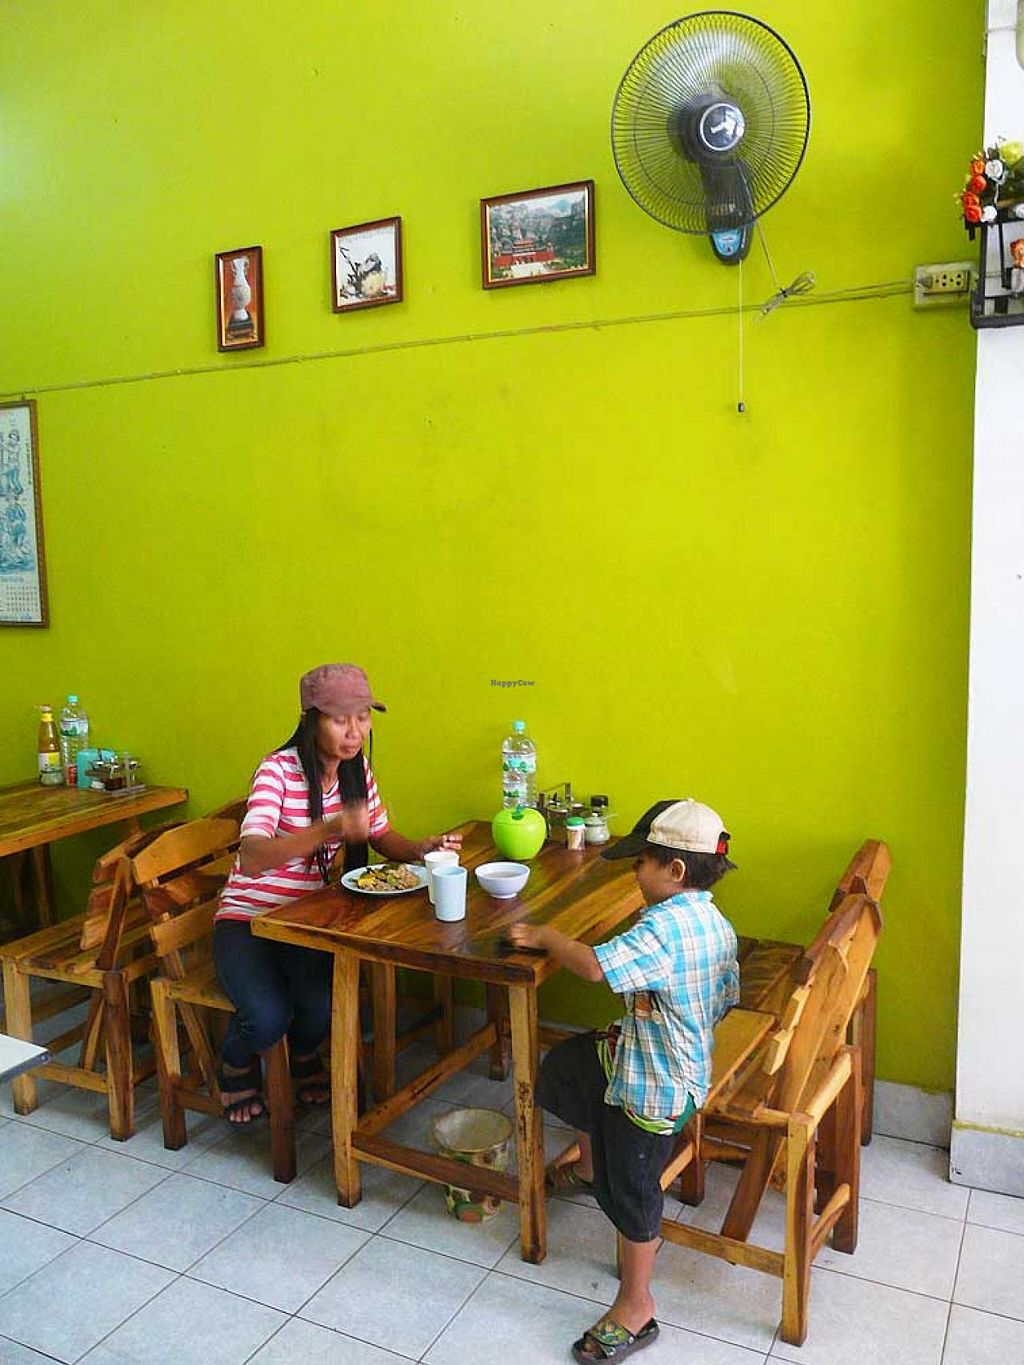 """Photo of Jay - Prajaksinlapacom Road  by <a href=""""/members/profile/The%20Hammer"""">The Hammer</a> <br/>Cozy interior with wooden tables <br/> January 11, 2014  - <a href='/contact/abuse/image/44618/62322'>Report</a>"""